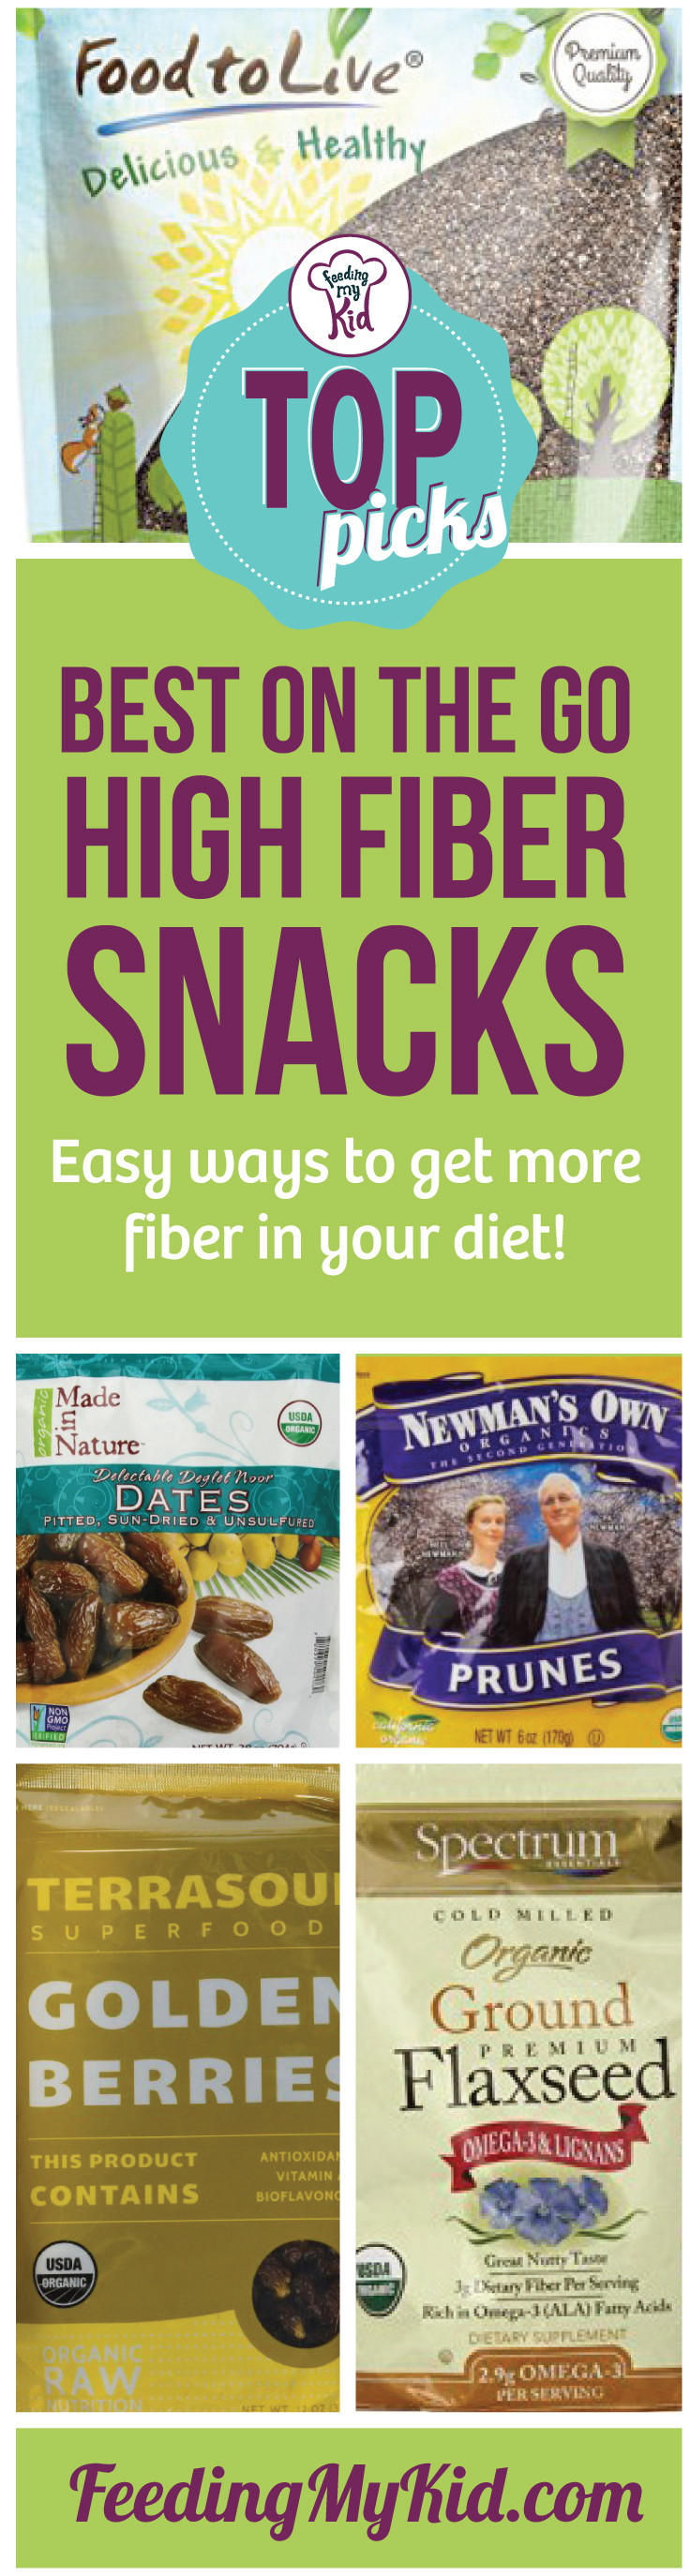 High Fiber Crackers  High Fiber Snacks Our Top Picks For Snacks on the Go